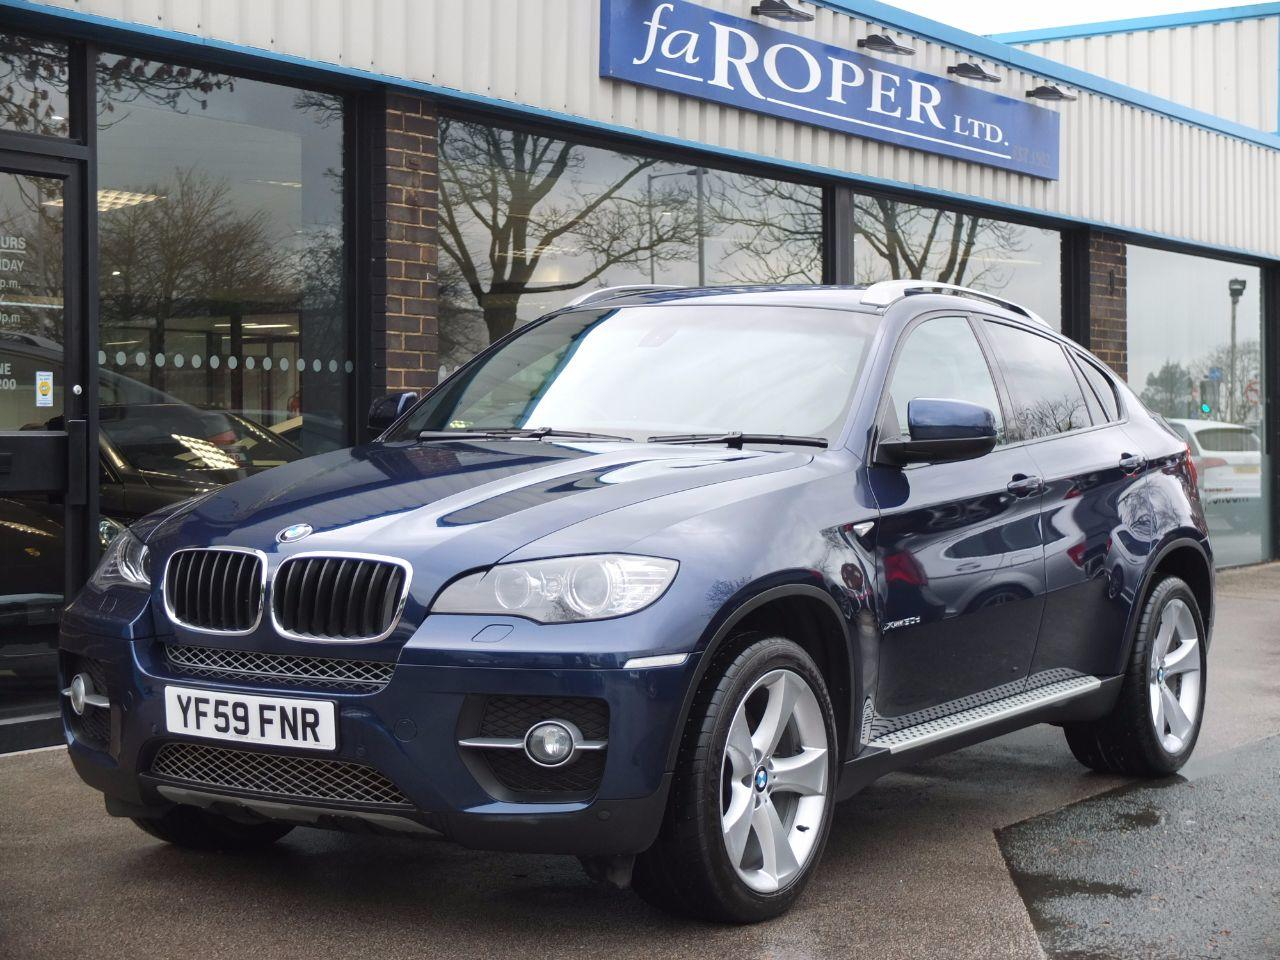 BMW X6 3.0 xDrive30d Auto (Media and Dynamic Packs) Coupe Diesel Deep Sea Blue MetallicBMW X6 3.0 xDrive30d Auto (Media and Dynamic Packs) Coupe Diesel Deep Sea Blue Metallic at fa Roper Ltd Bradford